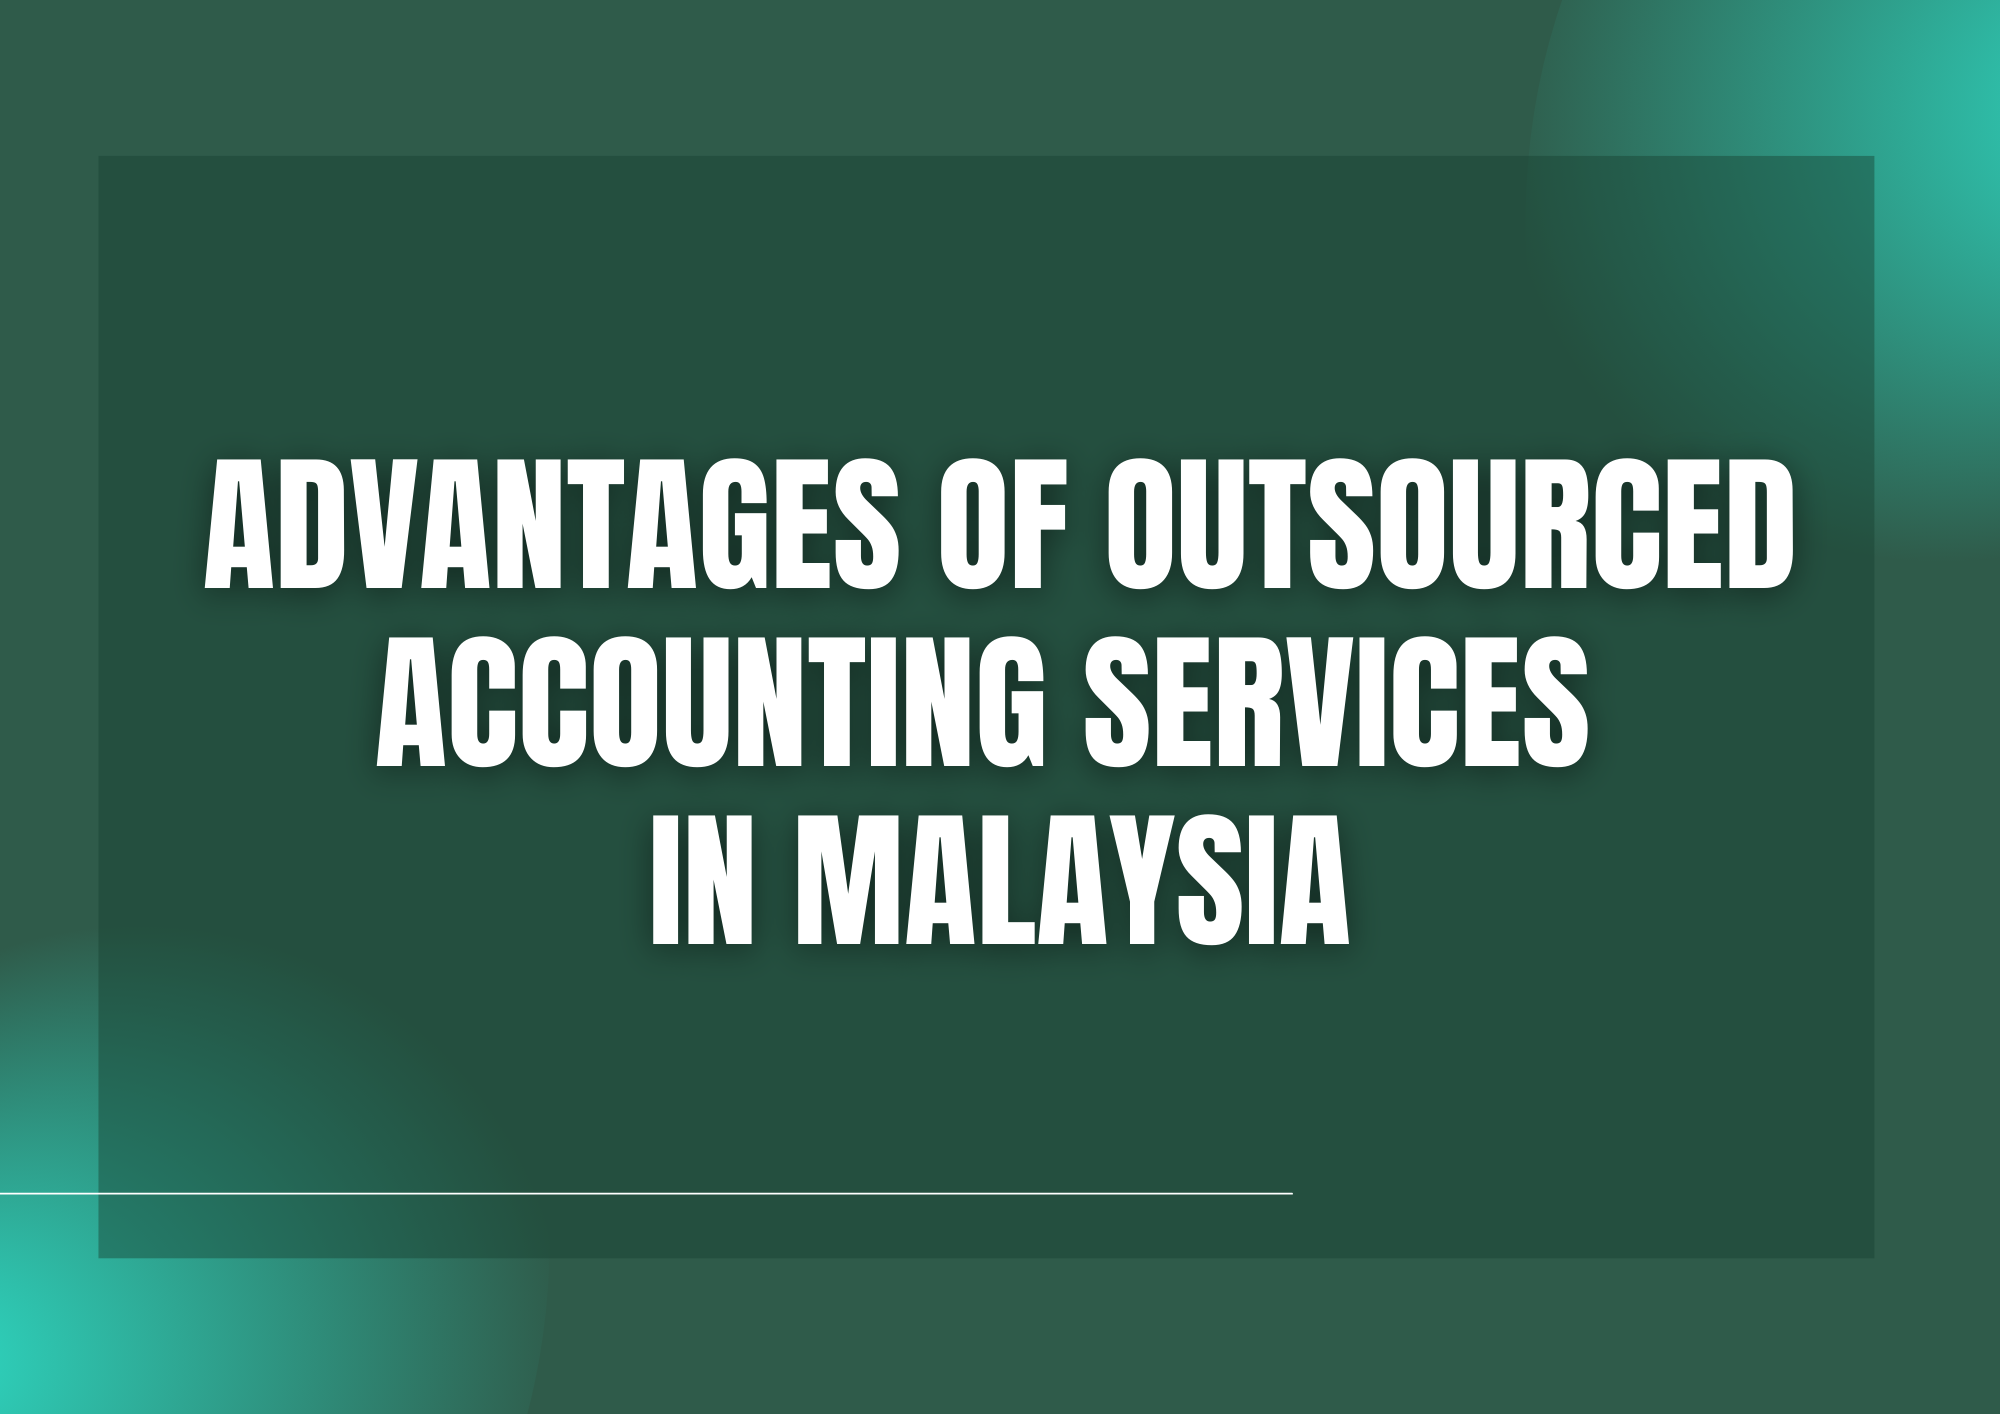 Advantages of Outsourced Accounting Services in Malaysia